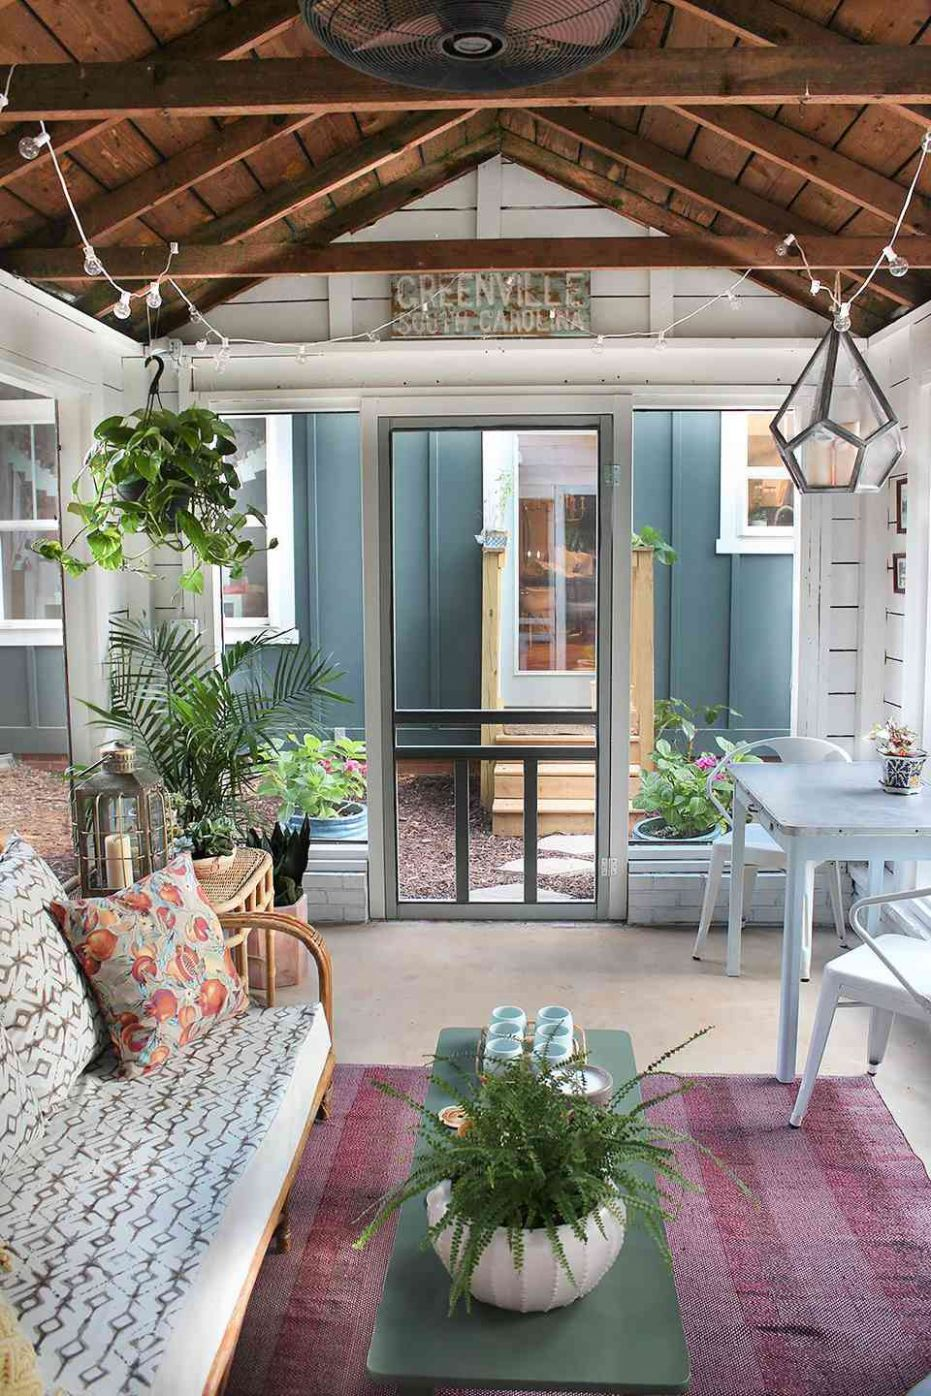 11 Sunroom Decor Ideas to Brighten Your Space - vintage sunroom ideas